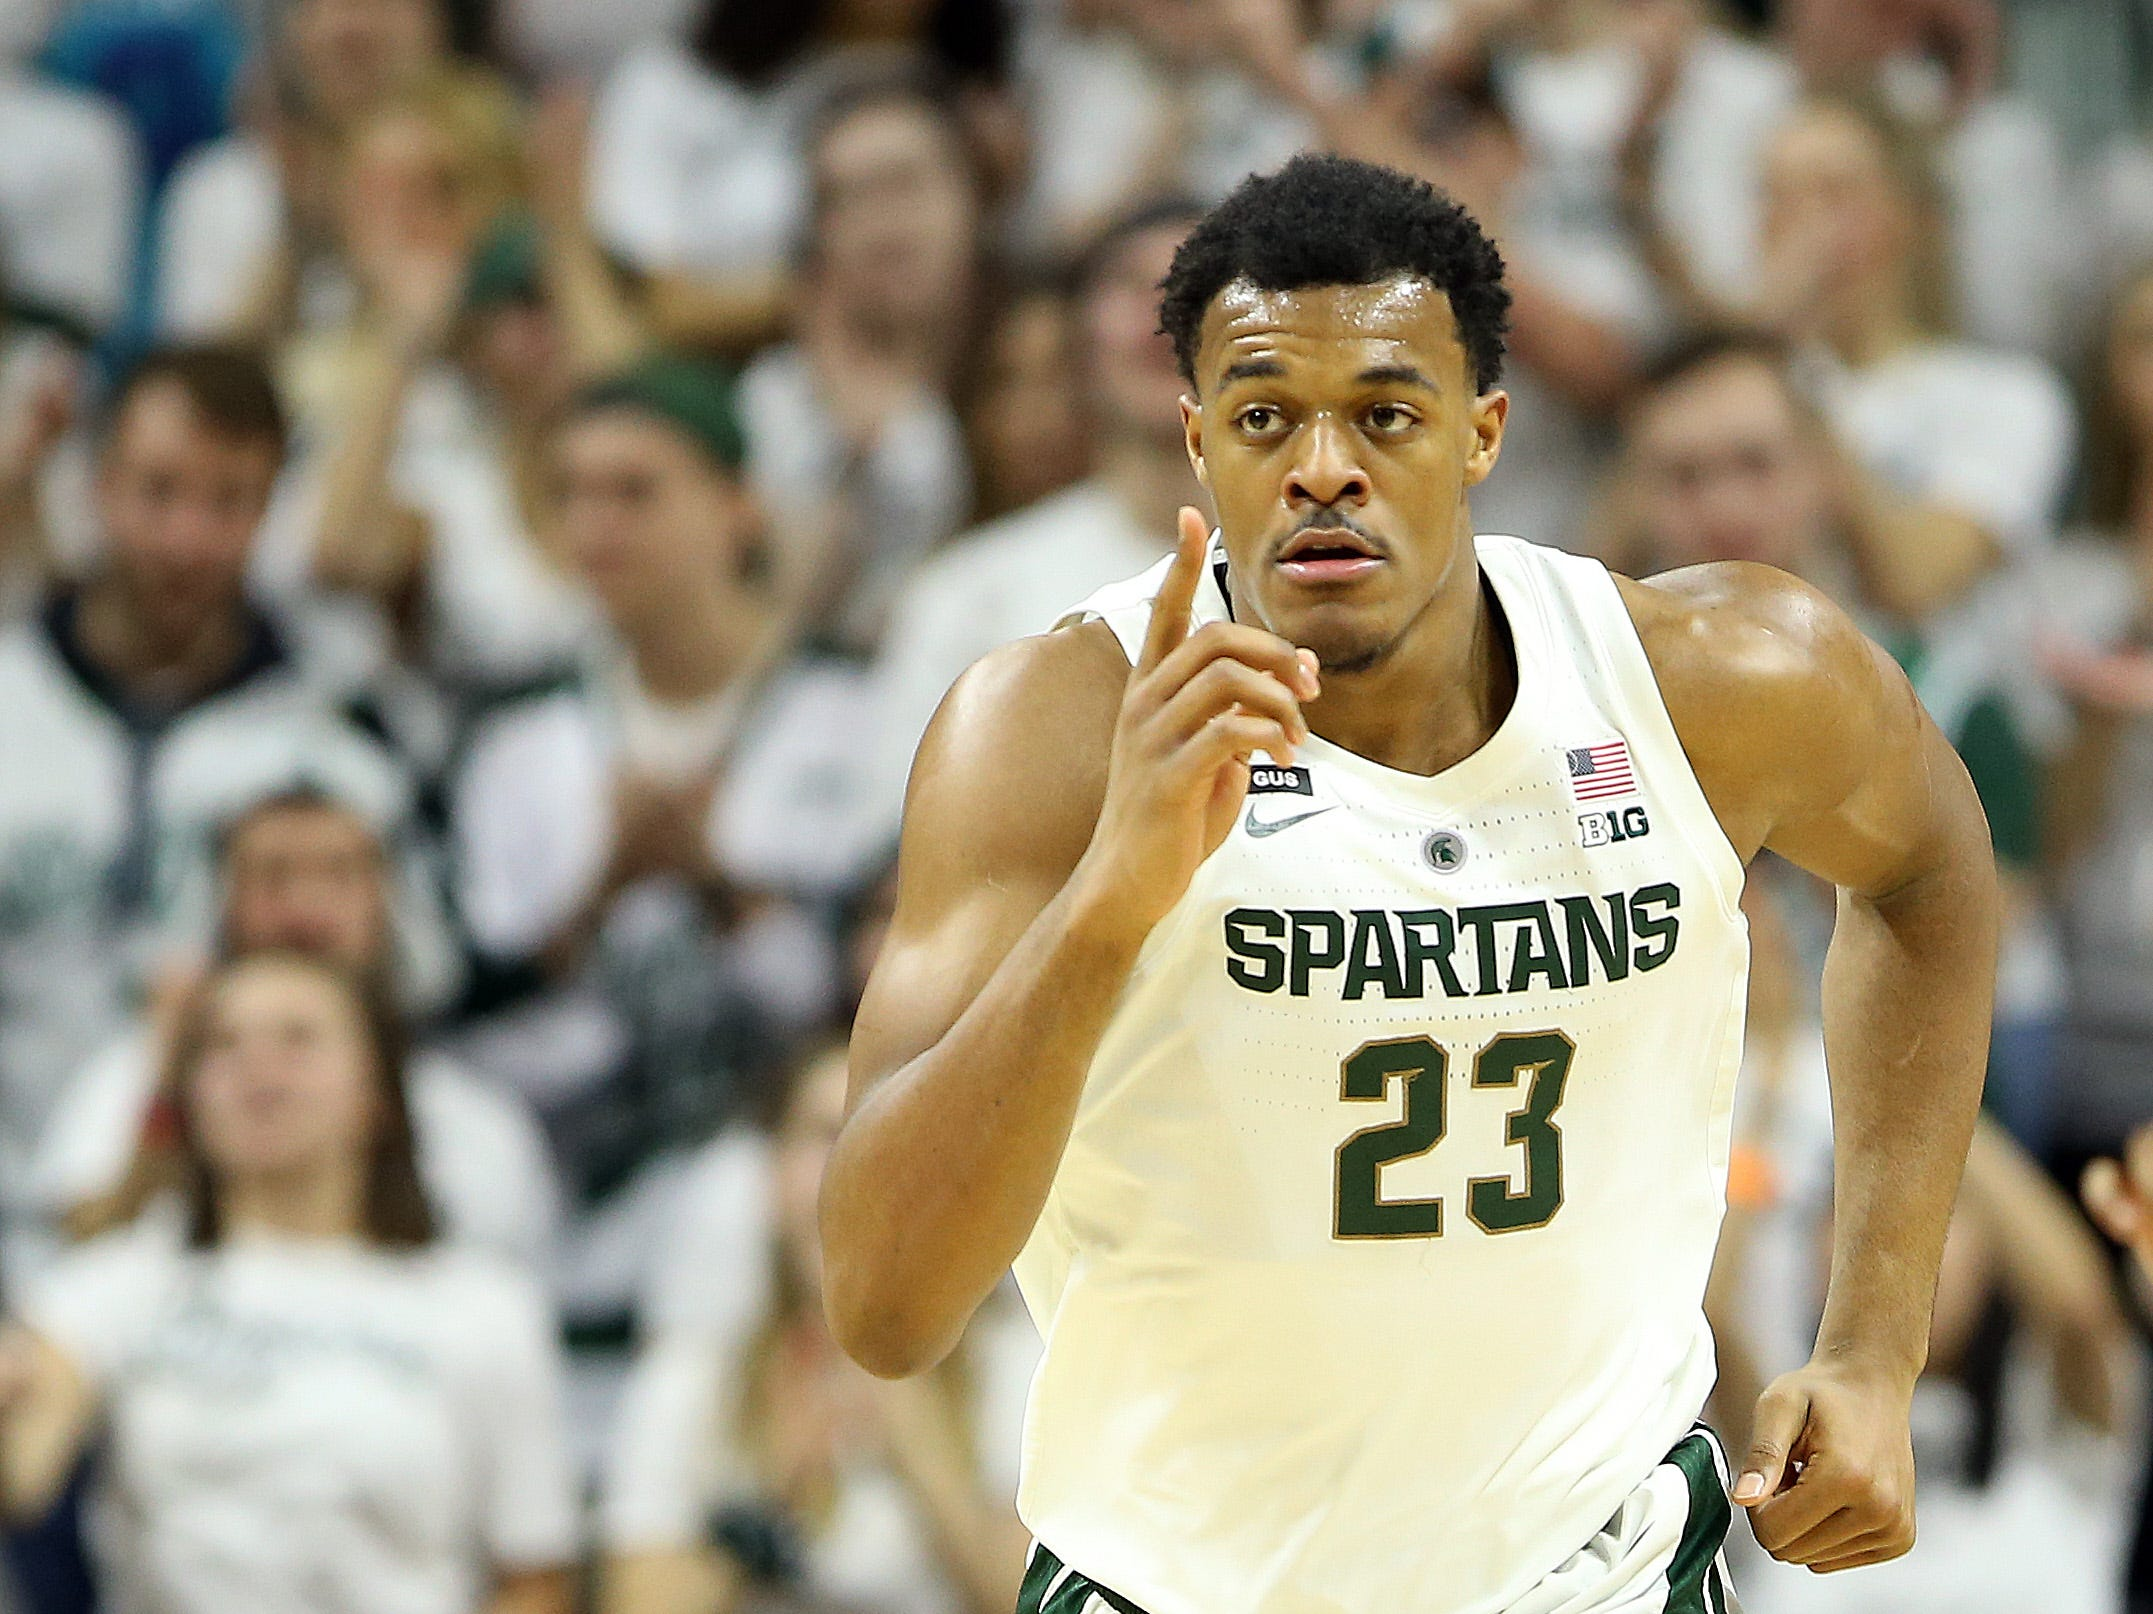 Feb 2, 2019; East Lansing, MI, USA; Michigan State Spartans forward Xavier Tillman (23) reacts during the first against the Indiana Hoosiers at the Breslin Center. Mandatory Credit: Mike Carter-USA TODAY Sports